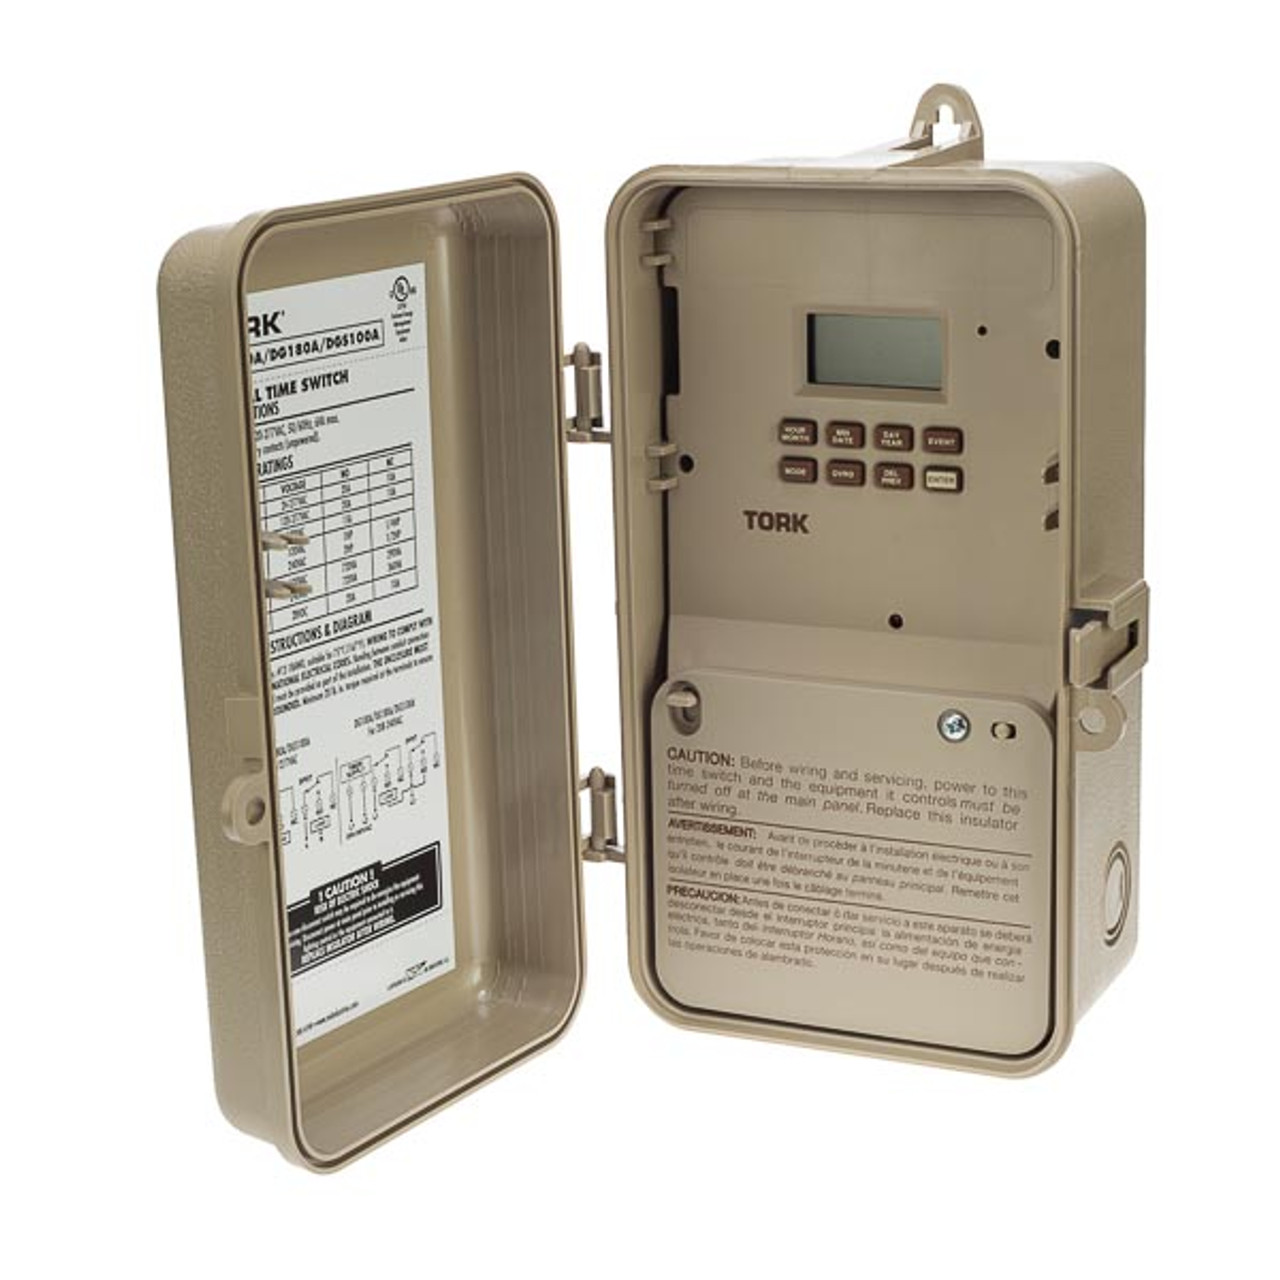 Tork DG200A 7 Day, Digital Holiday 2CH 20A 120-277V Time Switch